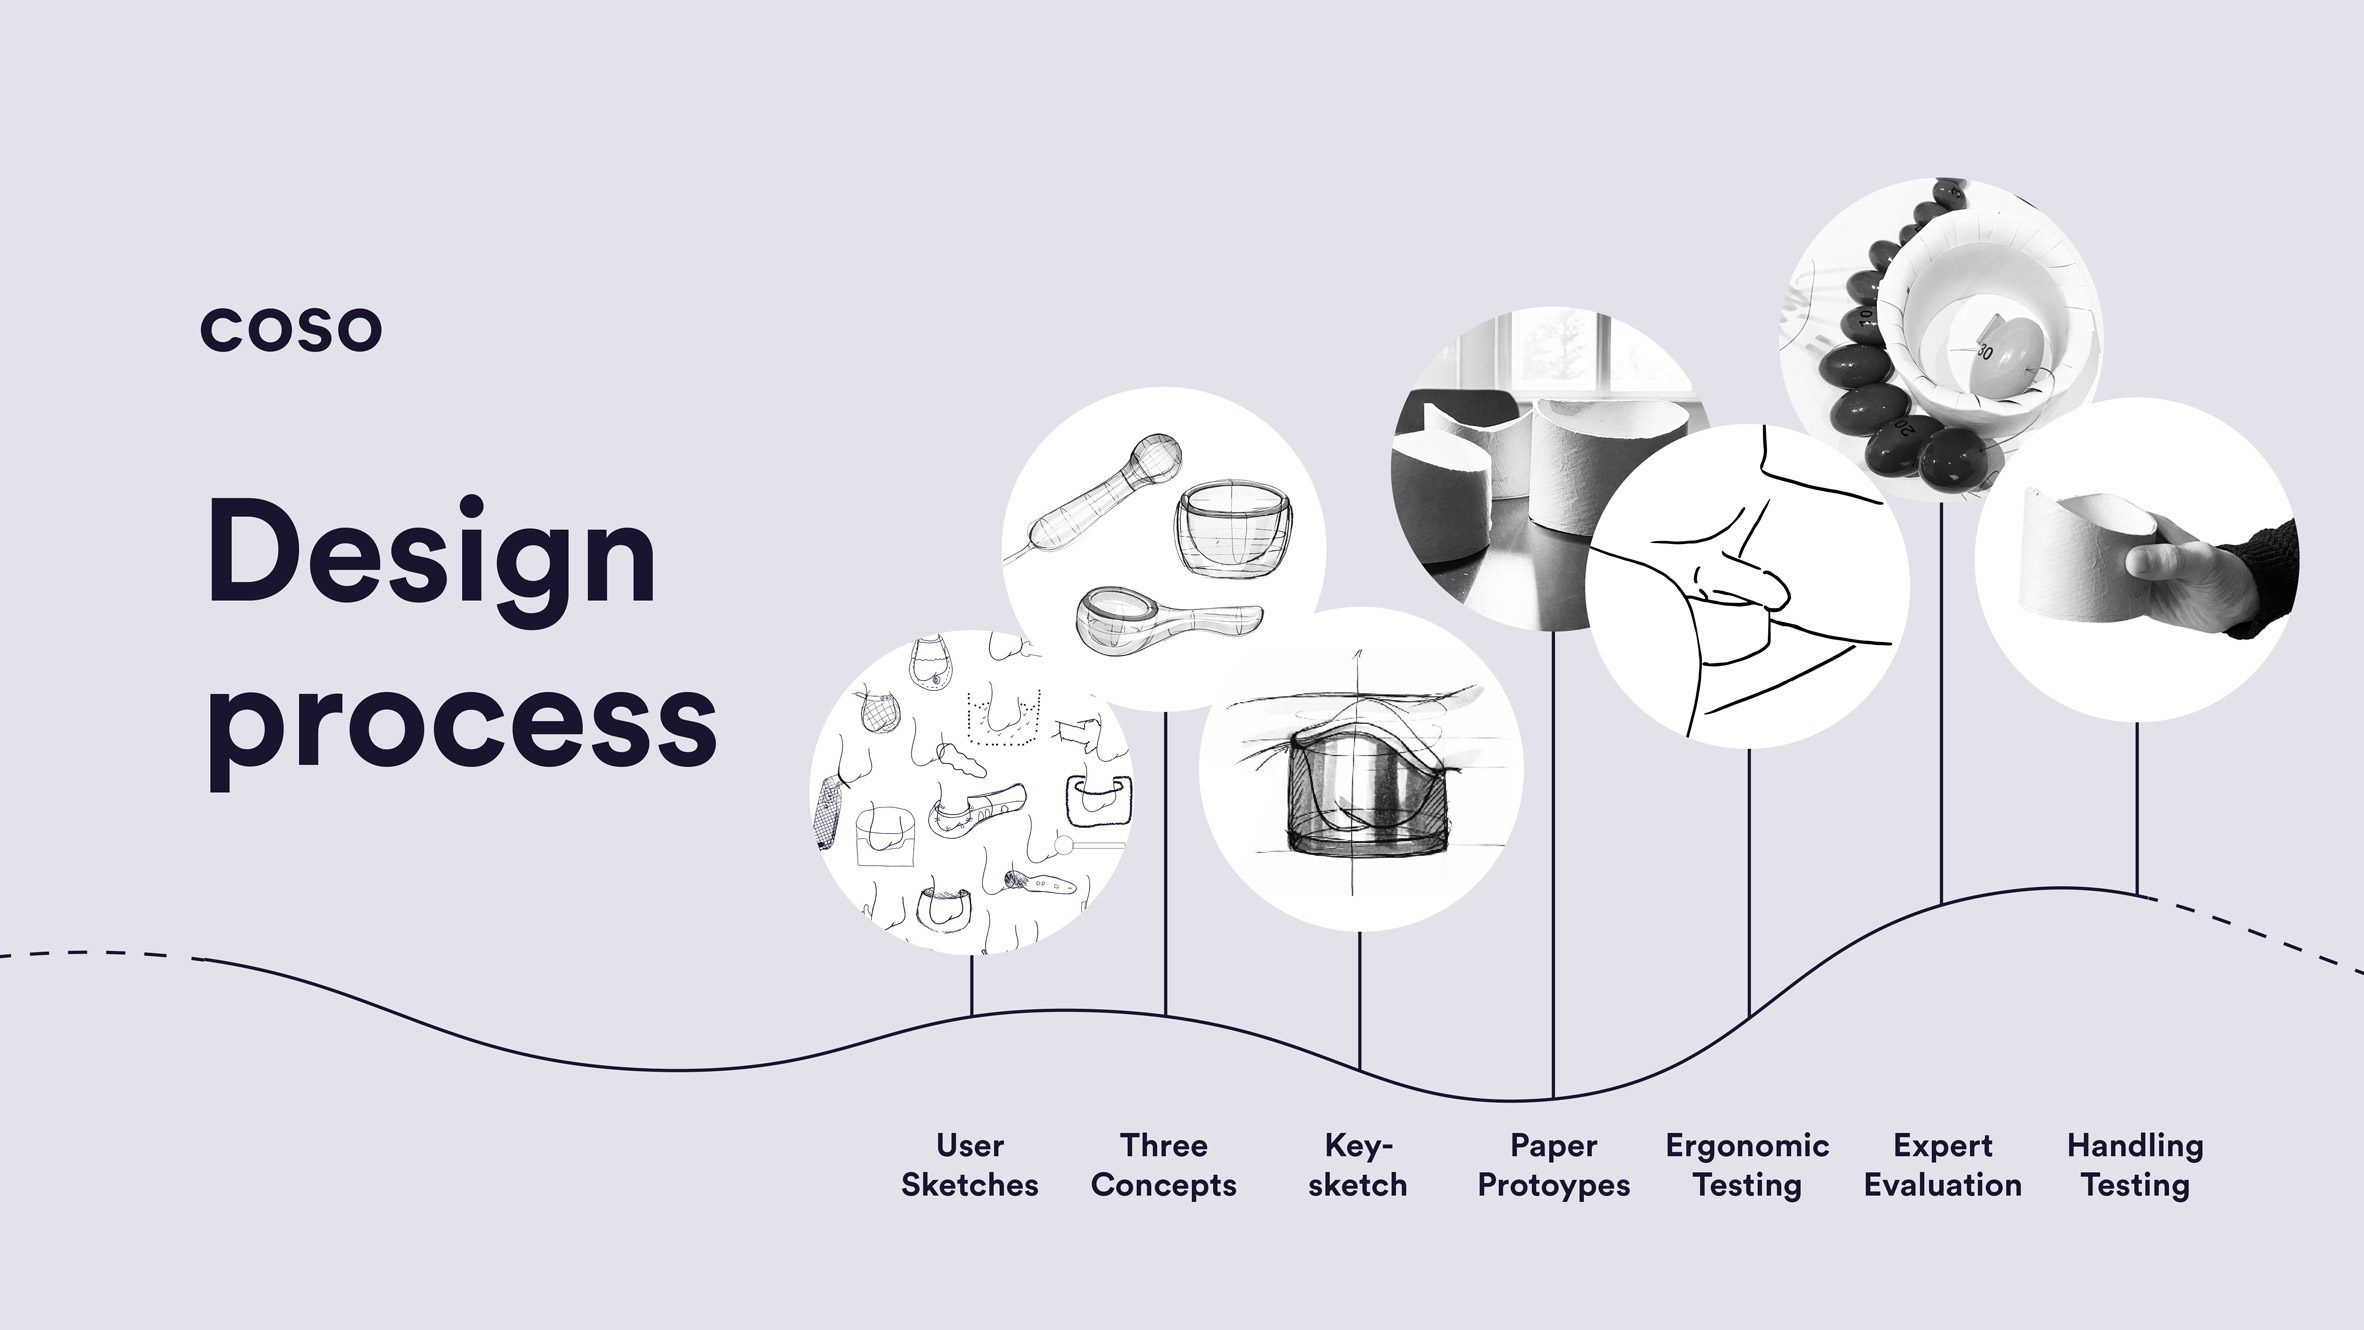 Infographic showing the Coso design process, going from user sketches to three concepts, key-sketch, paper prototypes, ergonomic testing, expert evaluation and handling testing